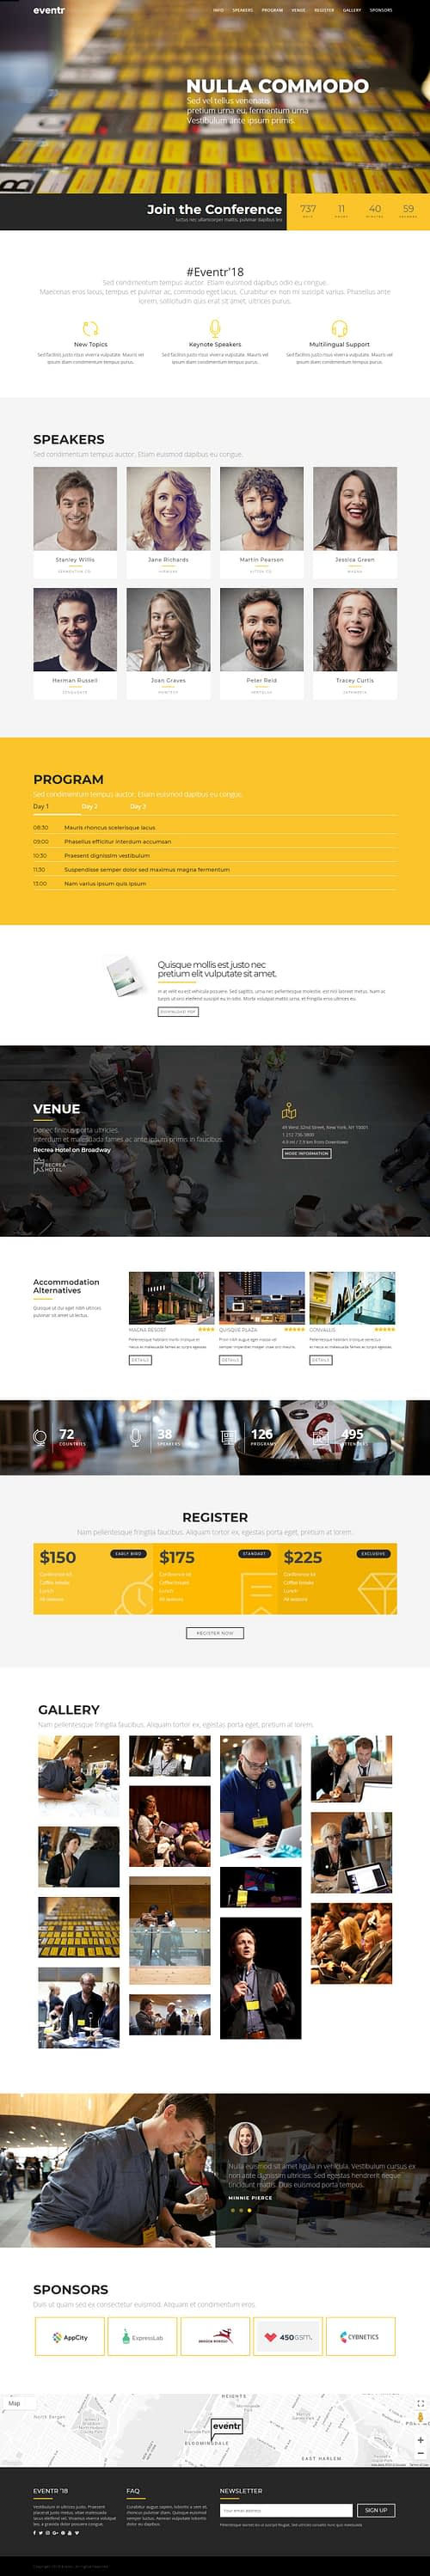 eventr best premium event wordpress theme - 10+ Best Premium Event WordPress Themes and Templates